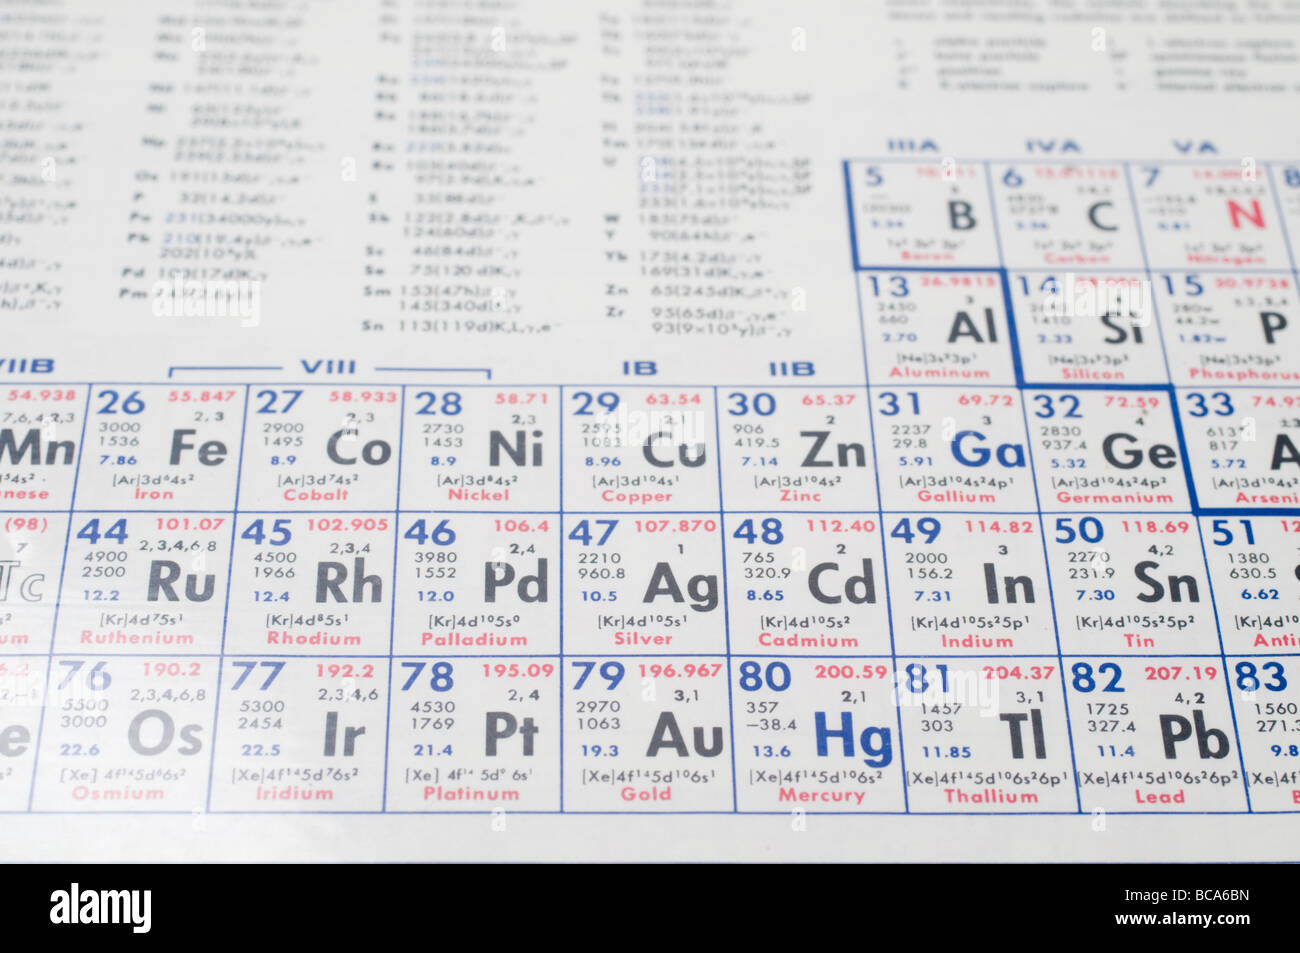 Chemical periodic table selective focus the periodic table shows chemical periodic table selective focus the periodic table shows the chemical elements ordered by atomic number gamestrikefo Choice Image